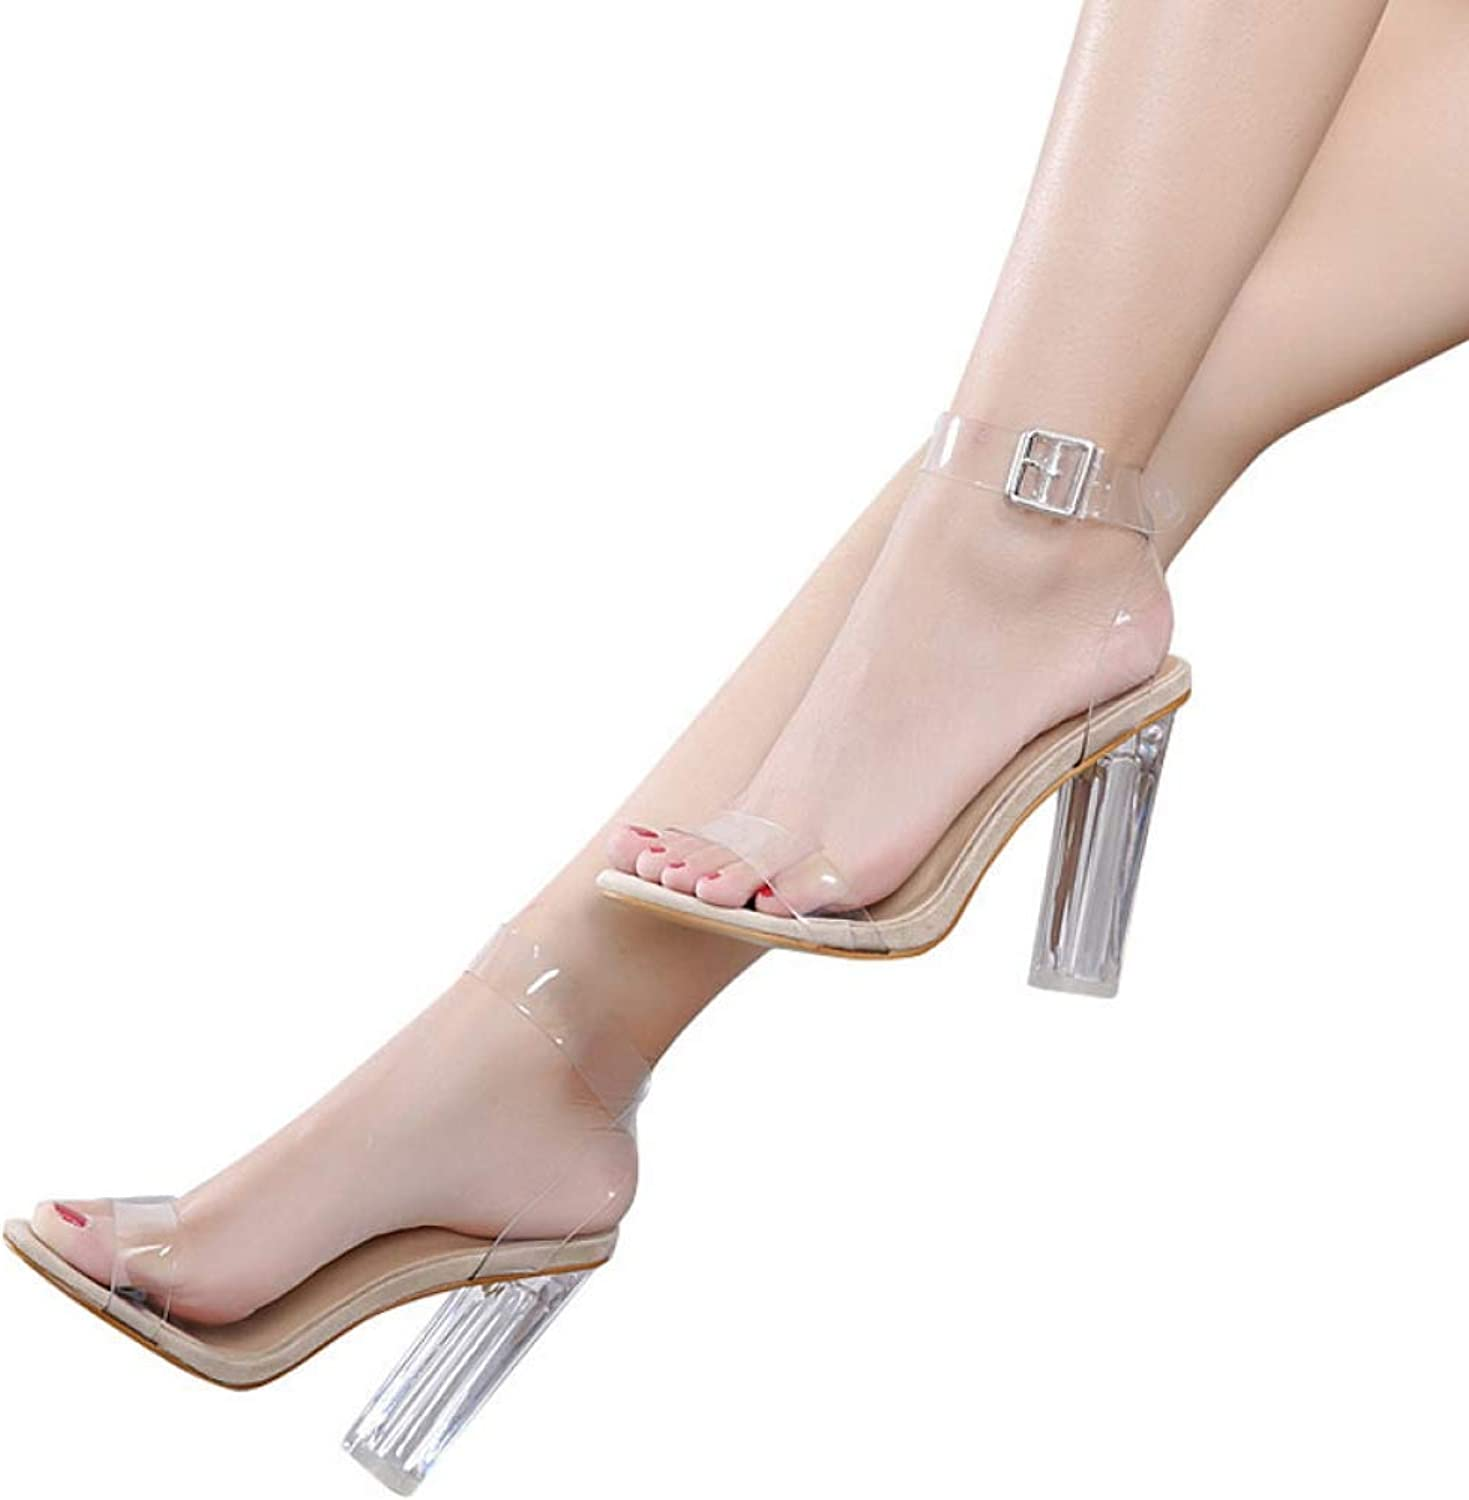 T-JULY Women's Sandals Ankle StrapTransparent High Heels Crystal High Ladies Sexy Wedding Party shoes